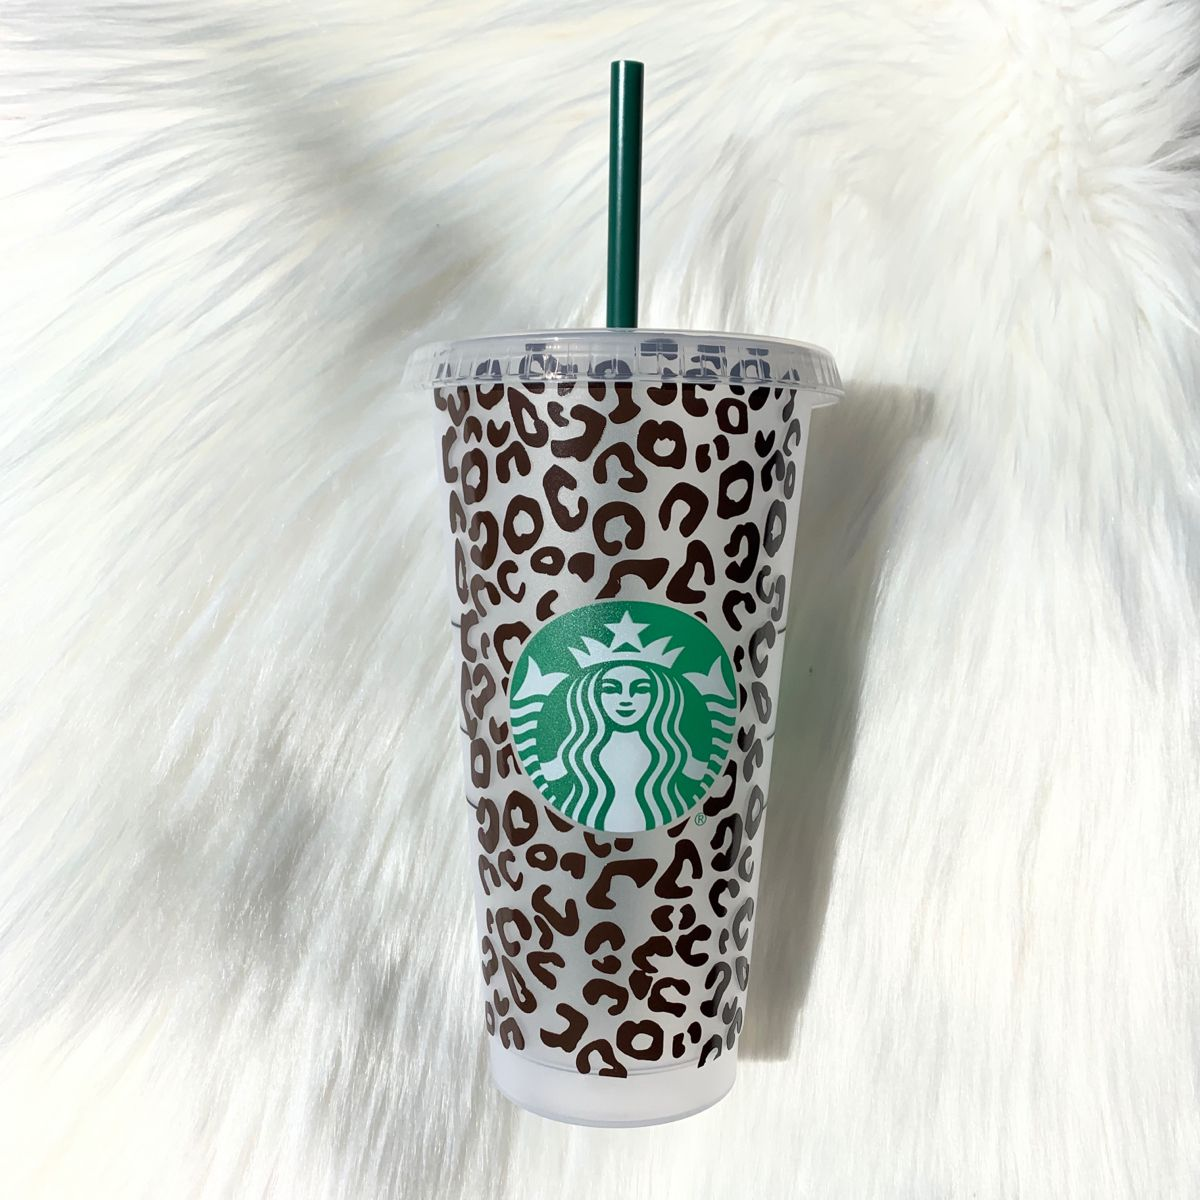 LEOPARD Print Full Wrap Starbucks 16oz Tumbler by